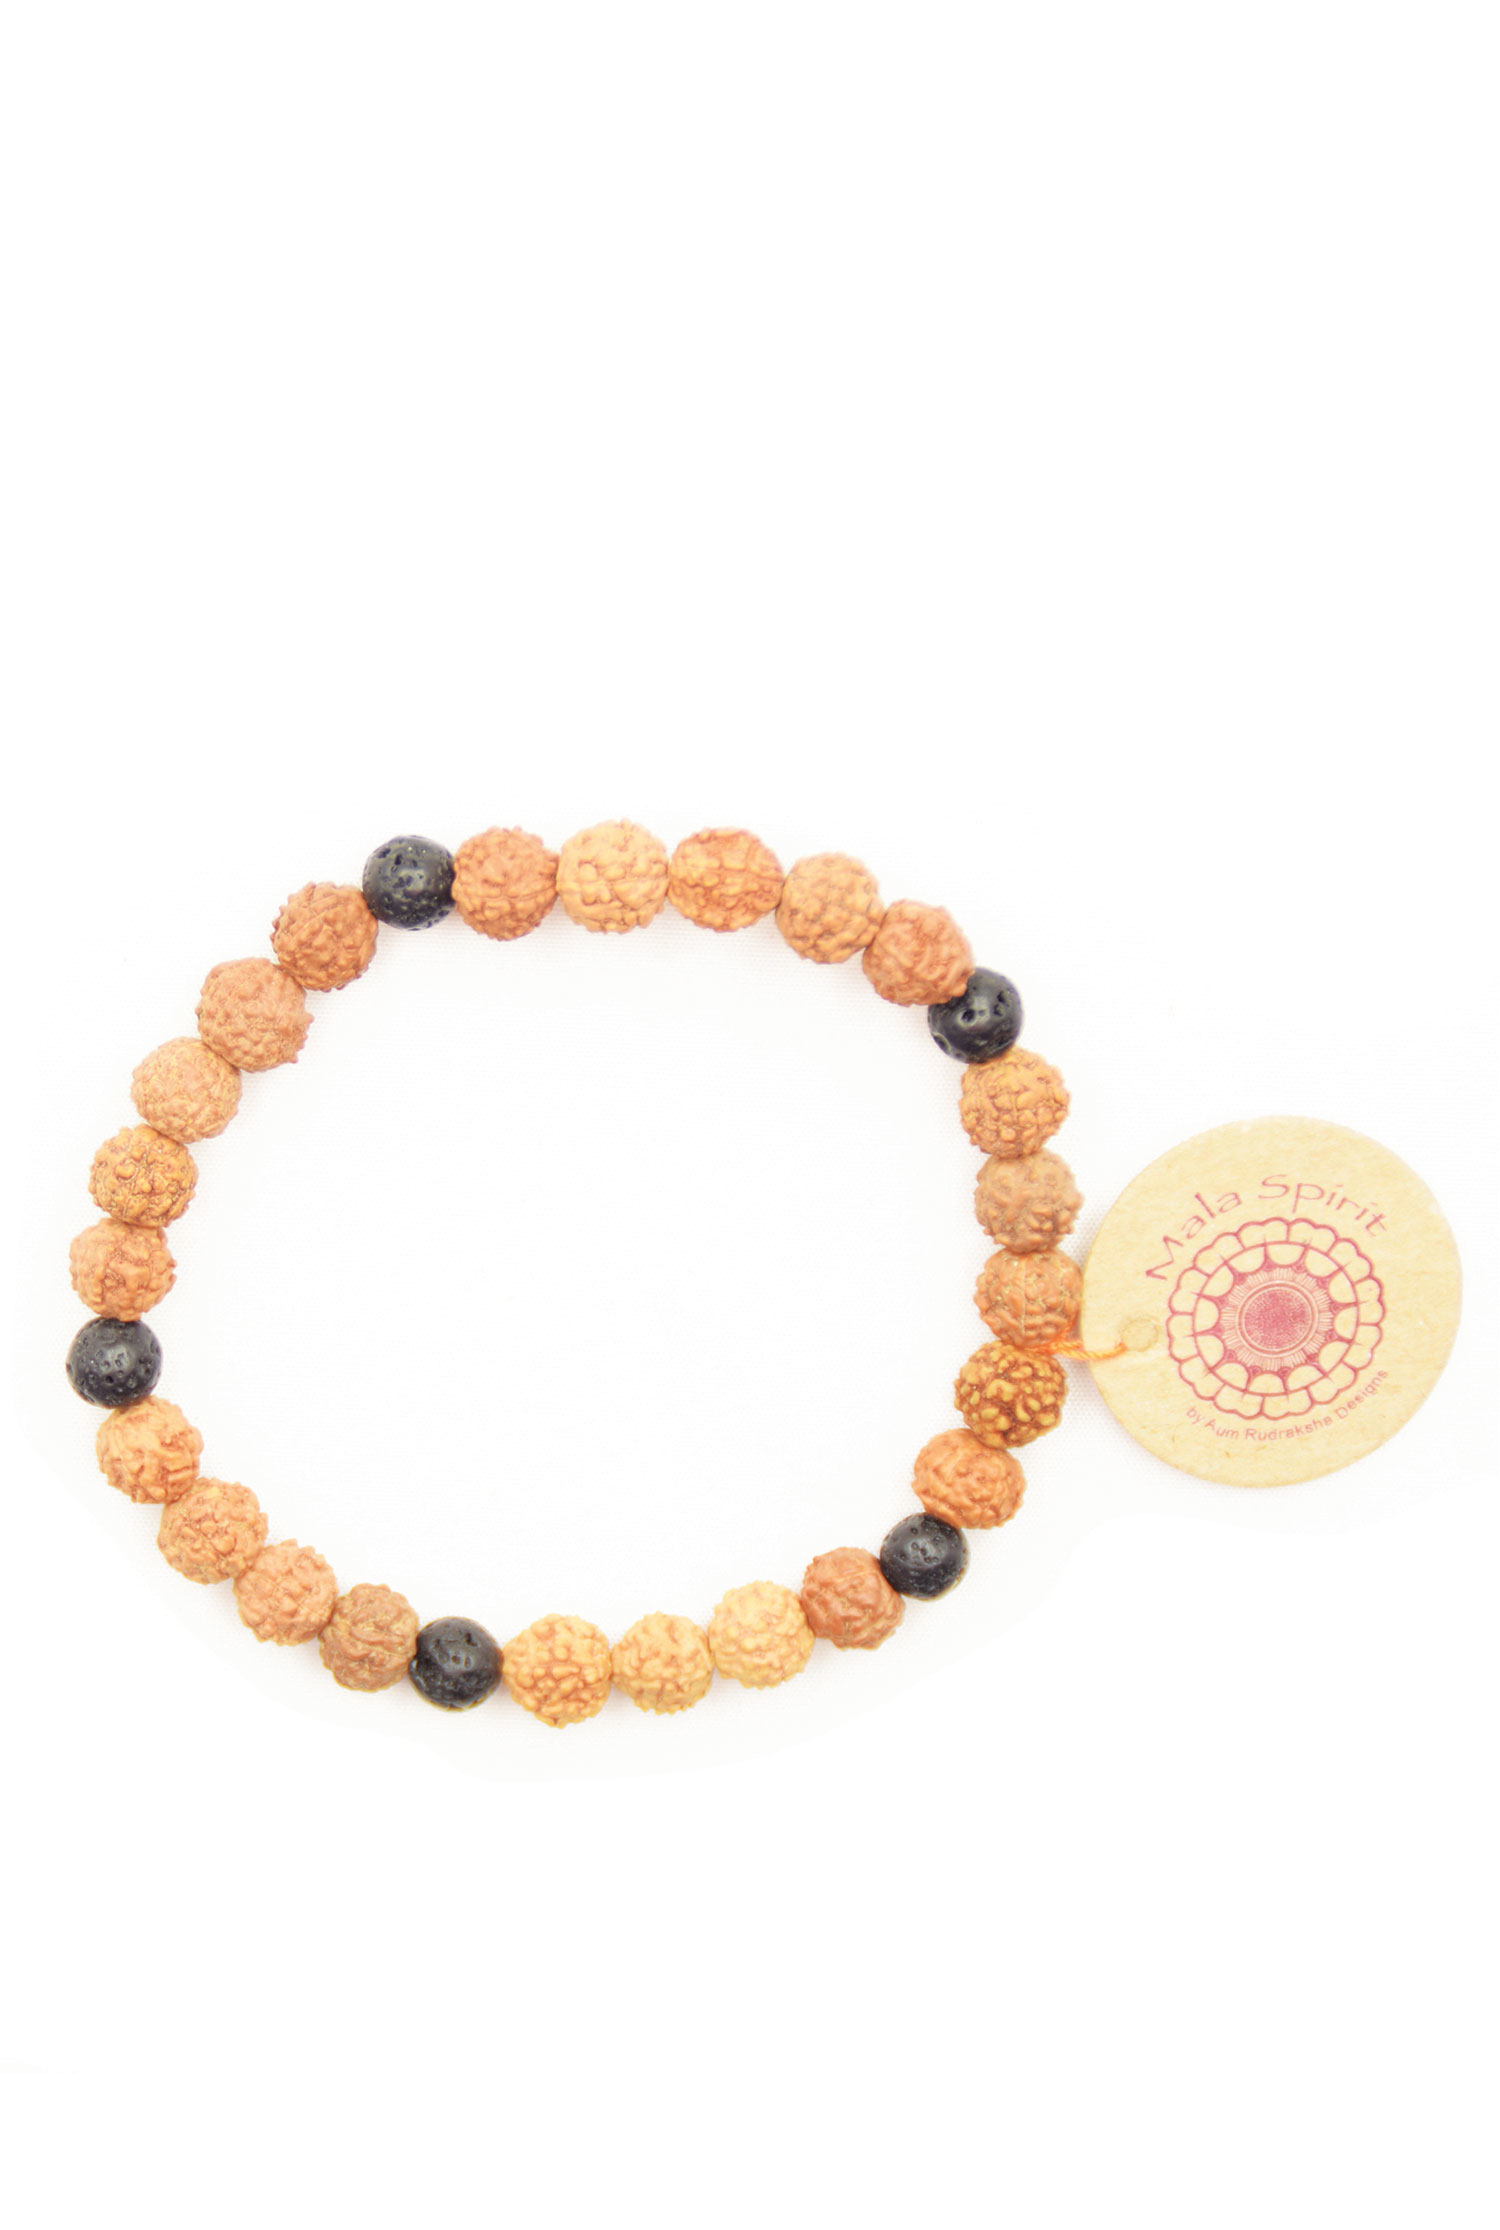 inner strength mala bracelet with rudraksha and lava mala